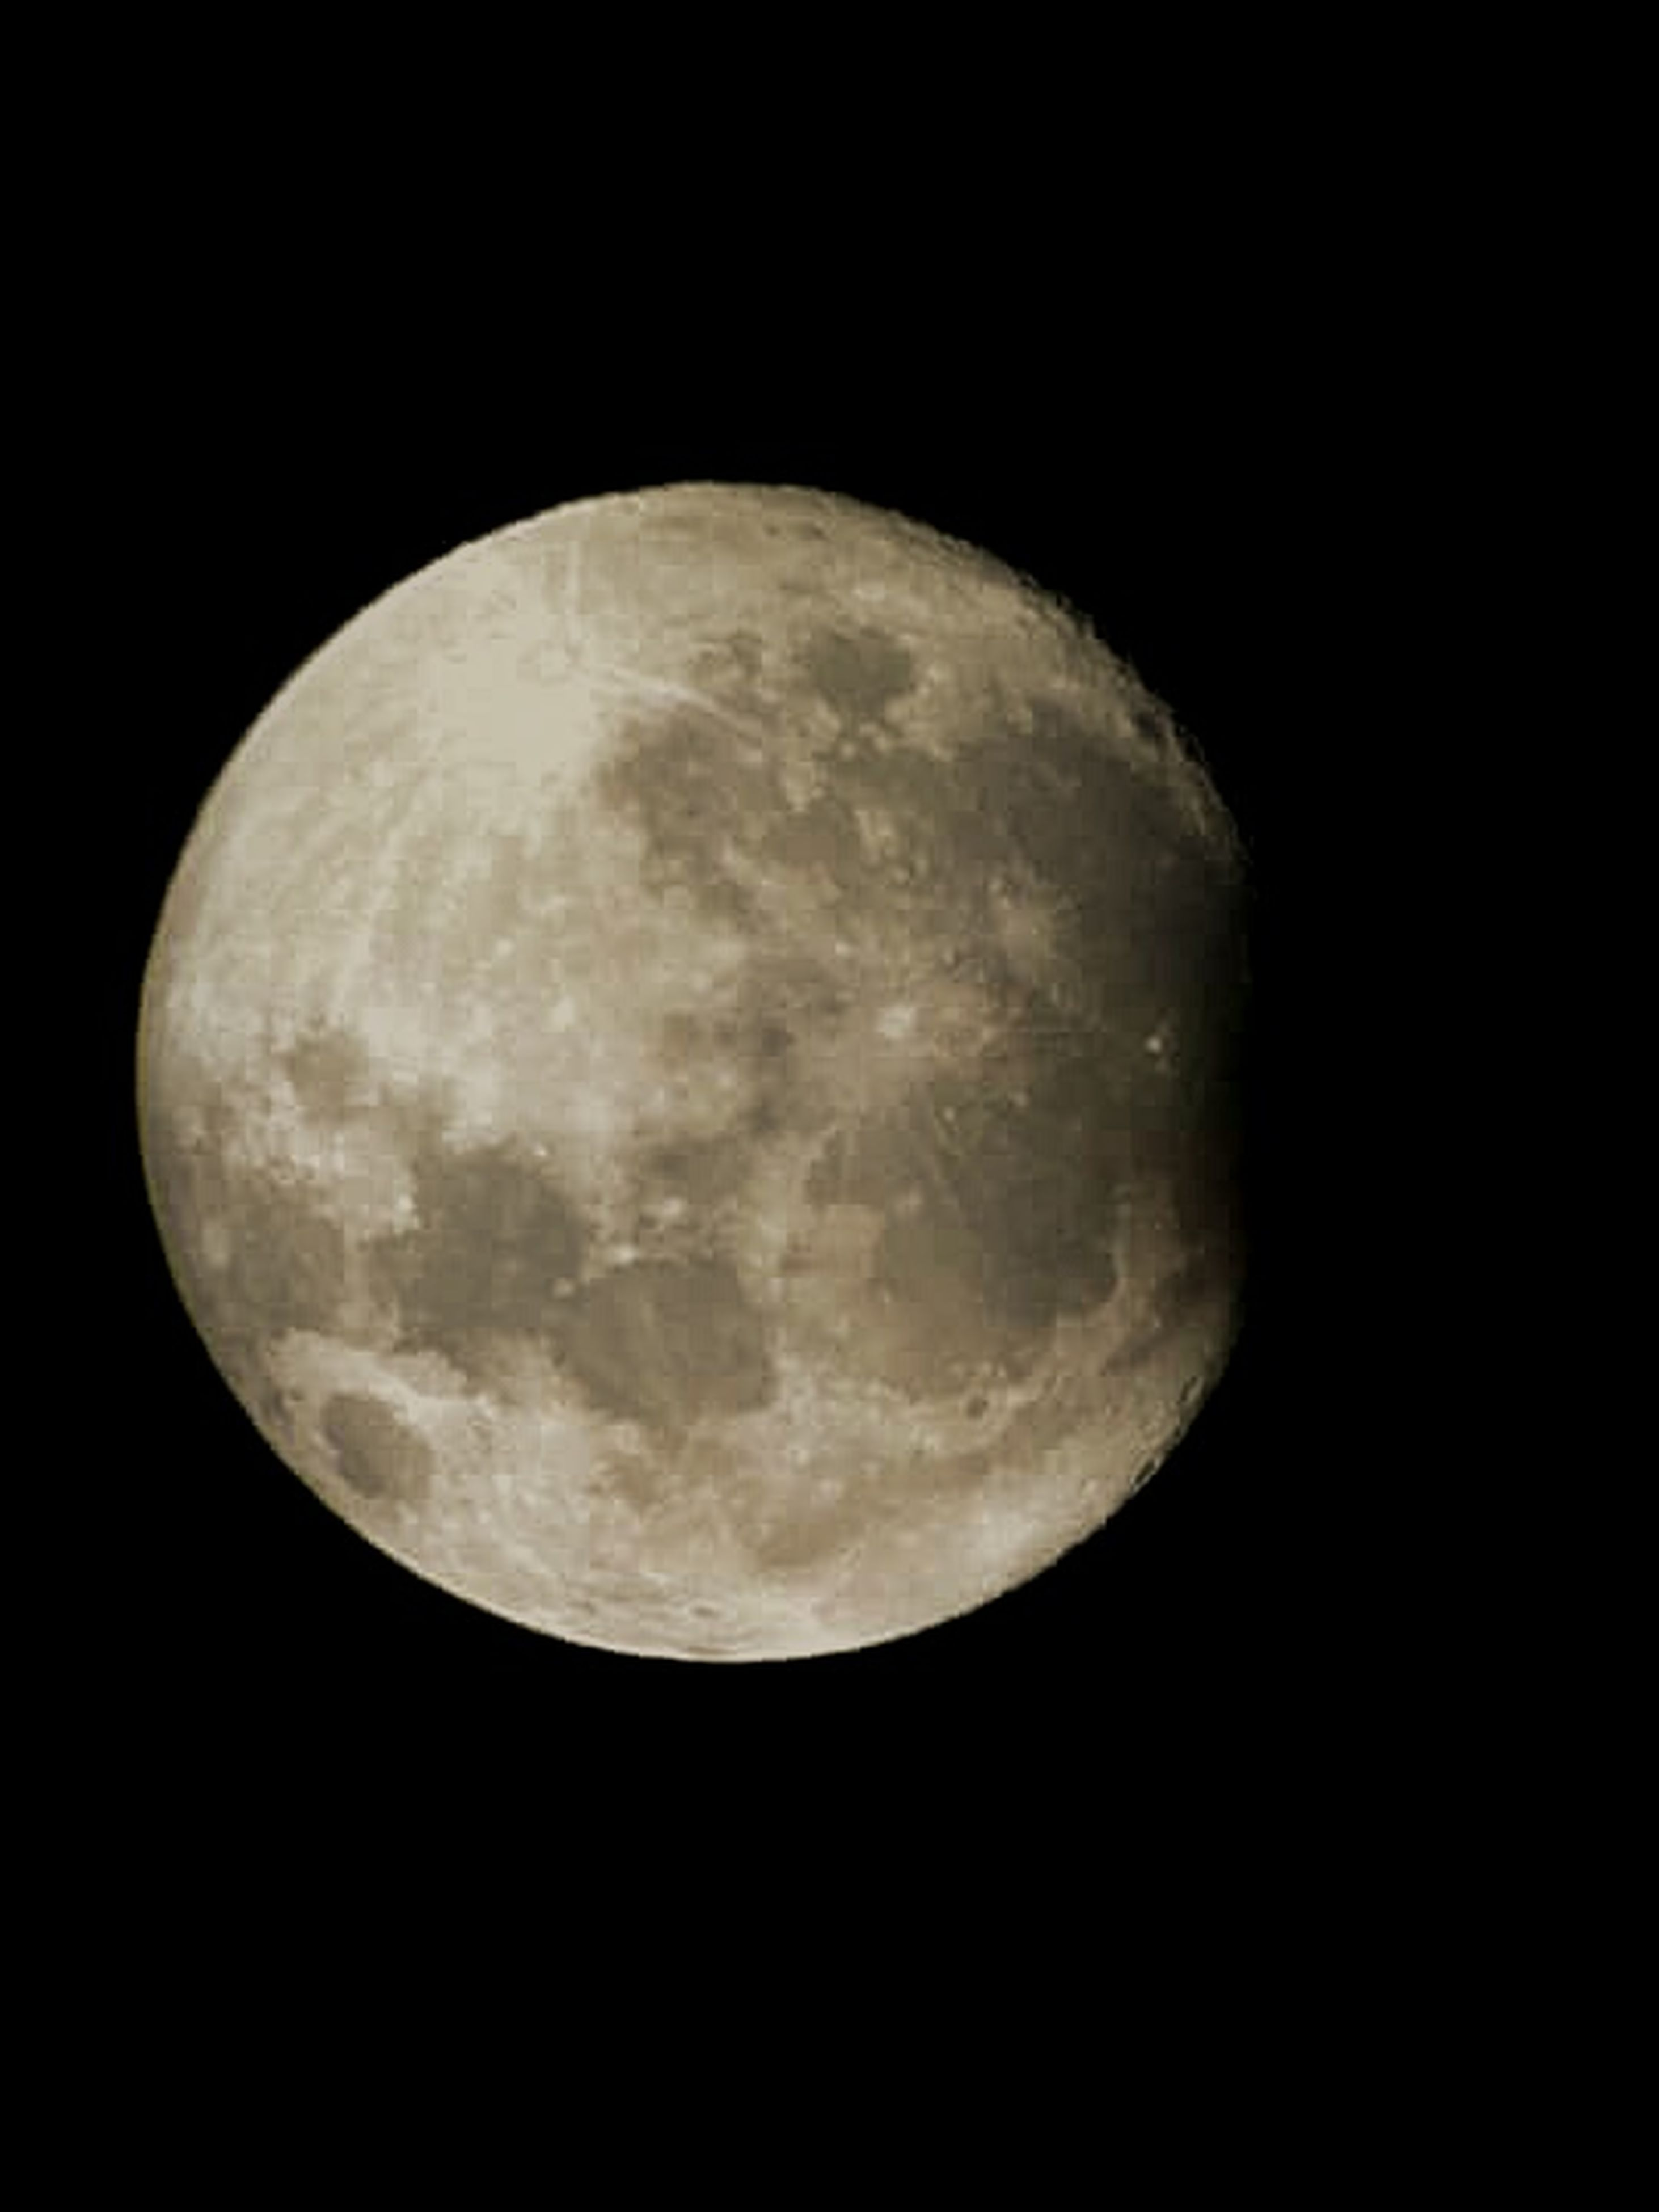 astronomy, moon, planetary moon, moon surface, sphere, full moon, night, discovery, beauty in nature, space exploration, nature, circle, tranquil scene, tranquility, close-up, low angle view, exploration, scenics, dark, majestic